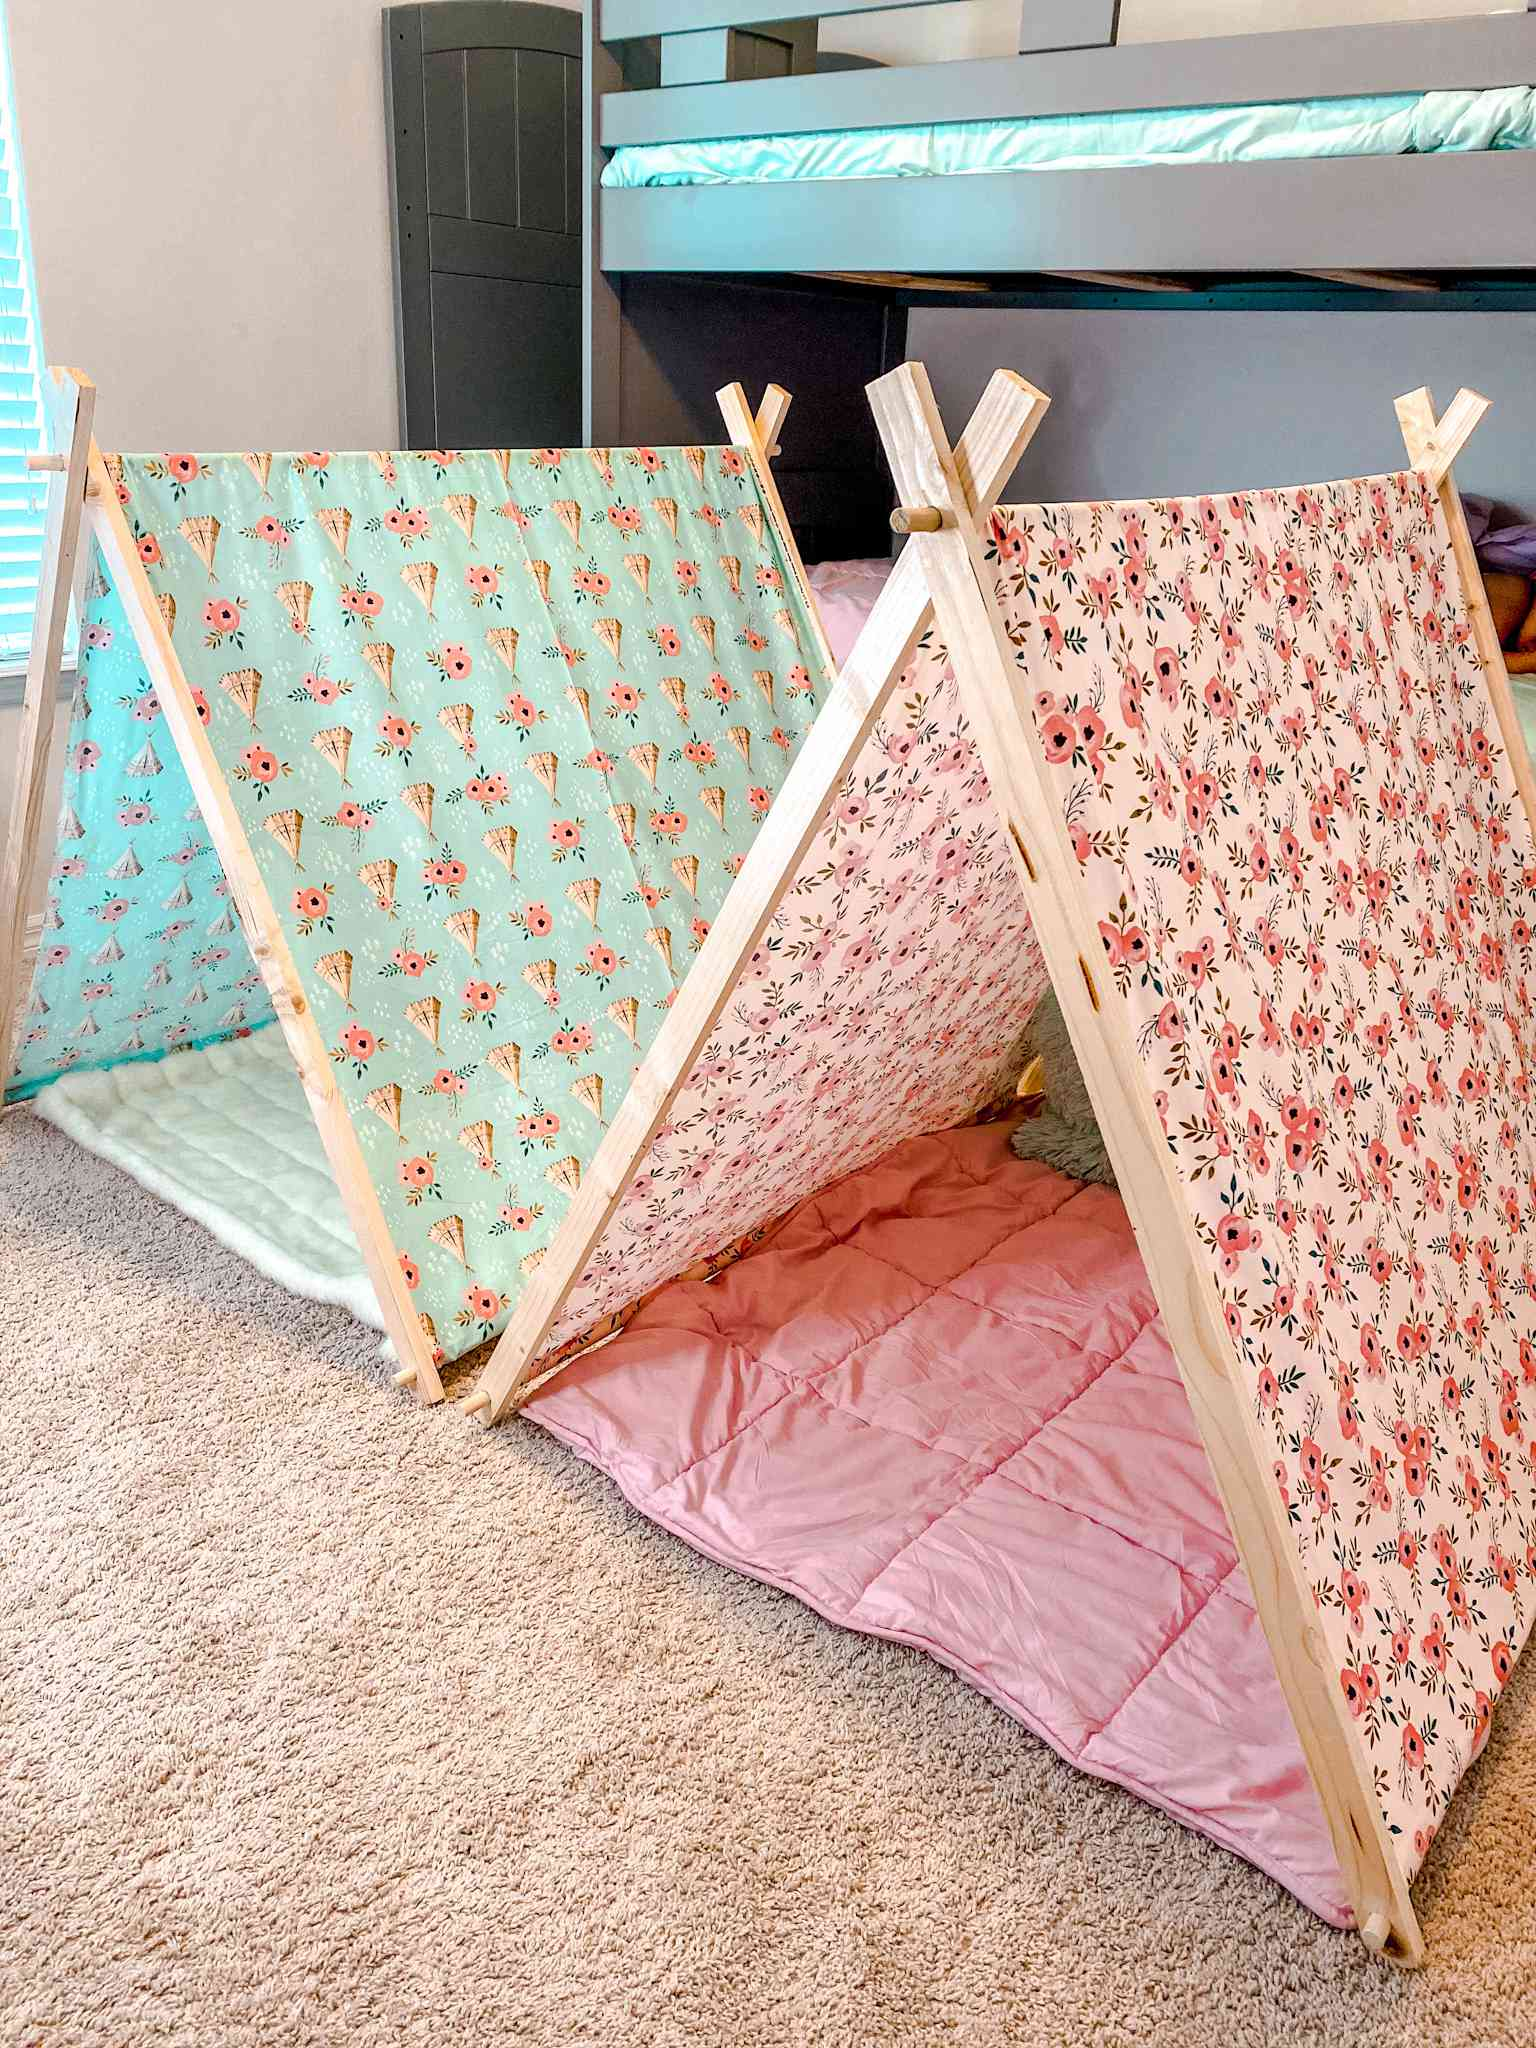 A blue and pink play tent in a bedroom